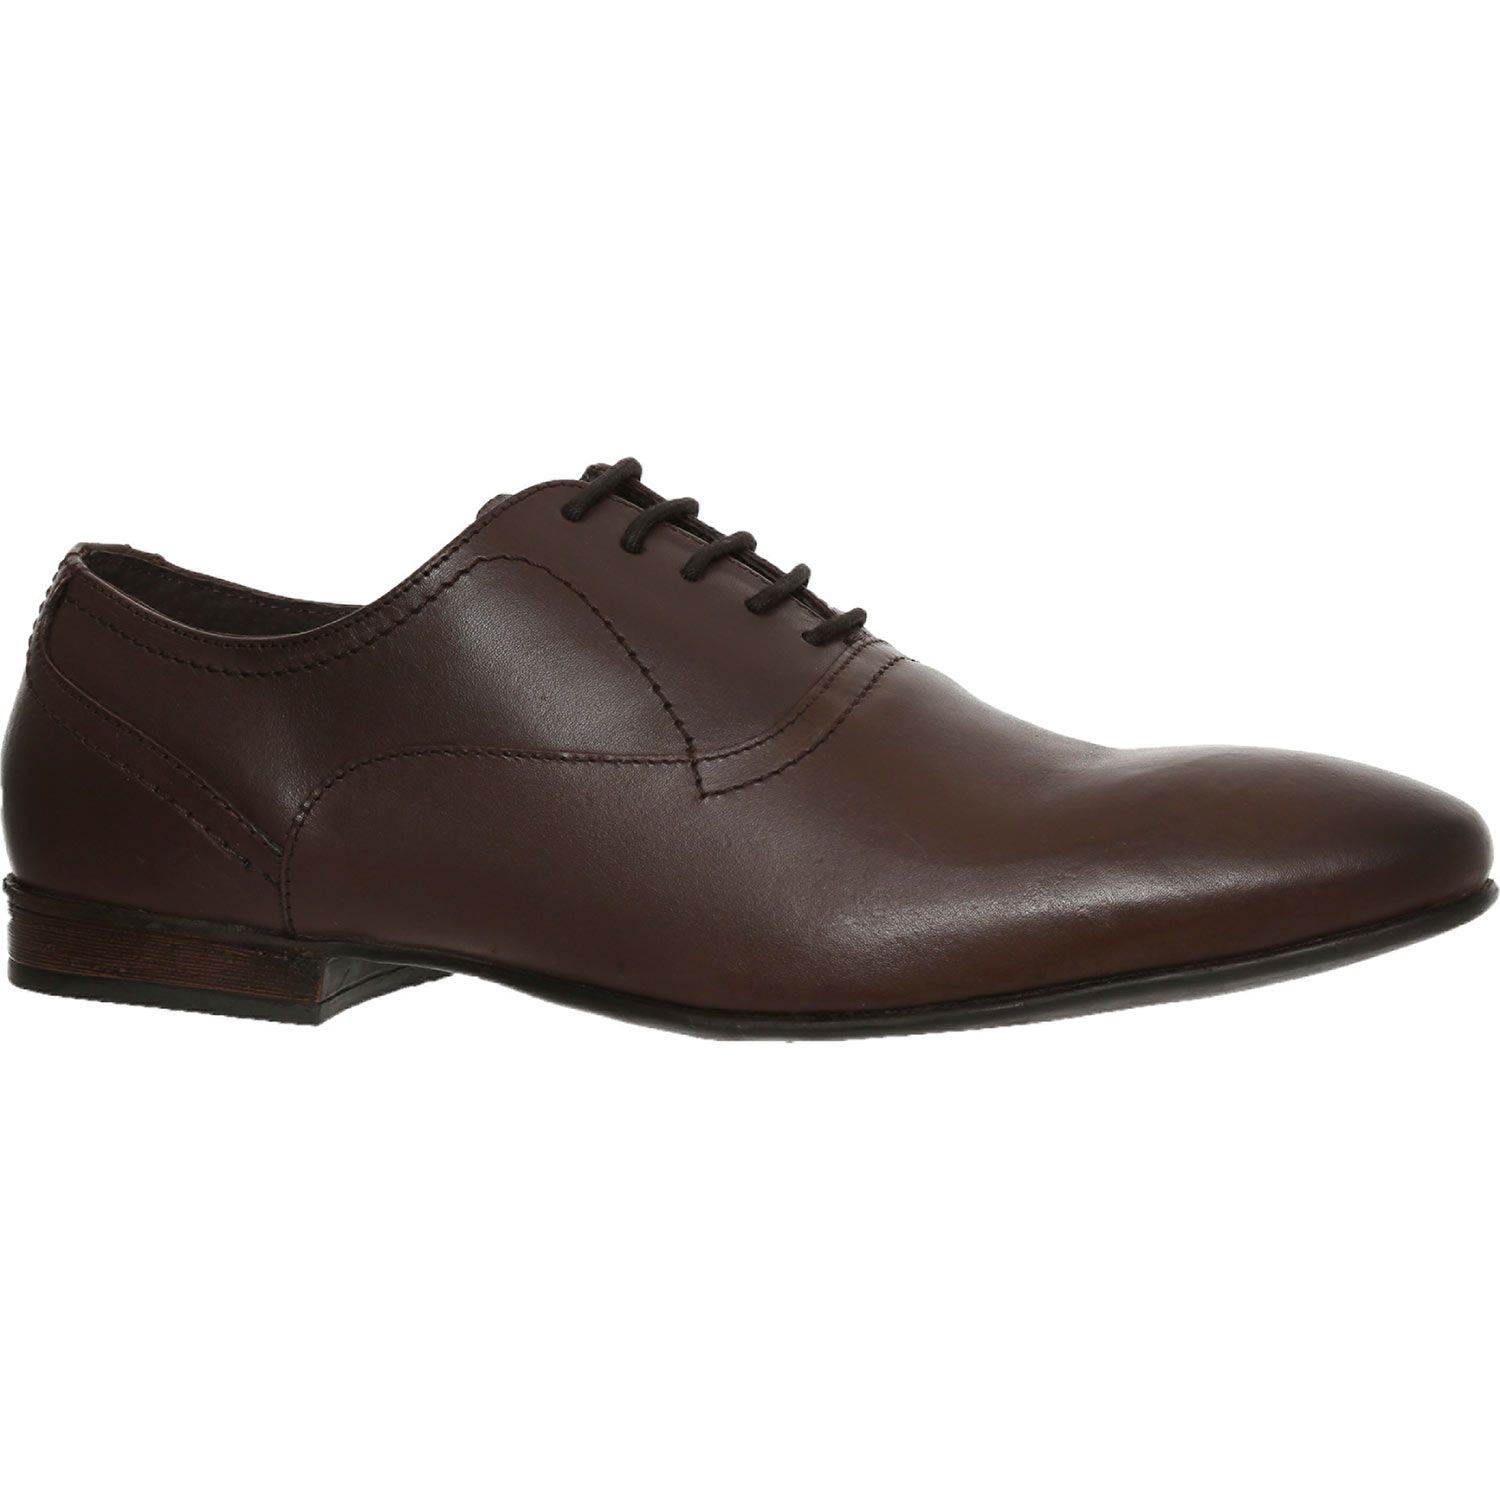 FOOTWEAR - Lace-up shoes Intrigo Shoes